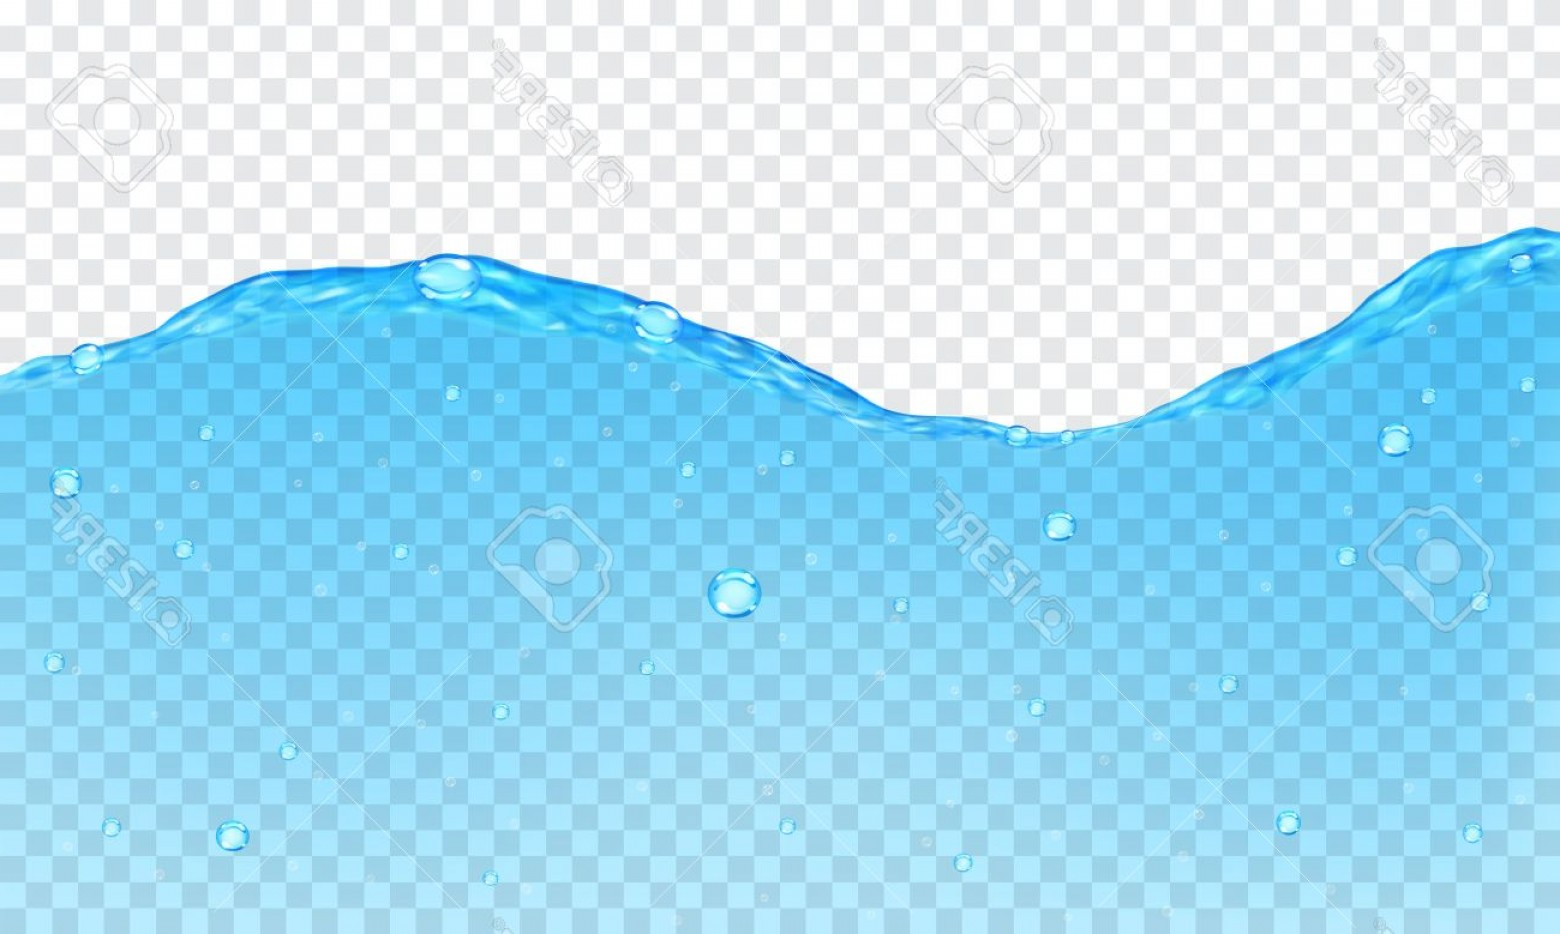 Transparent Water Vector: Photostock Vector Background Of Transparent Water With Bubbles